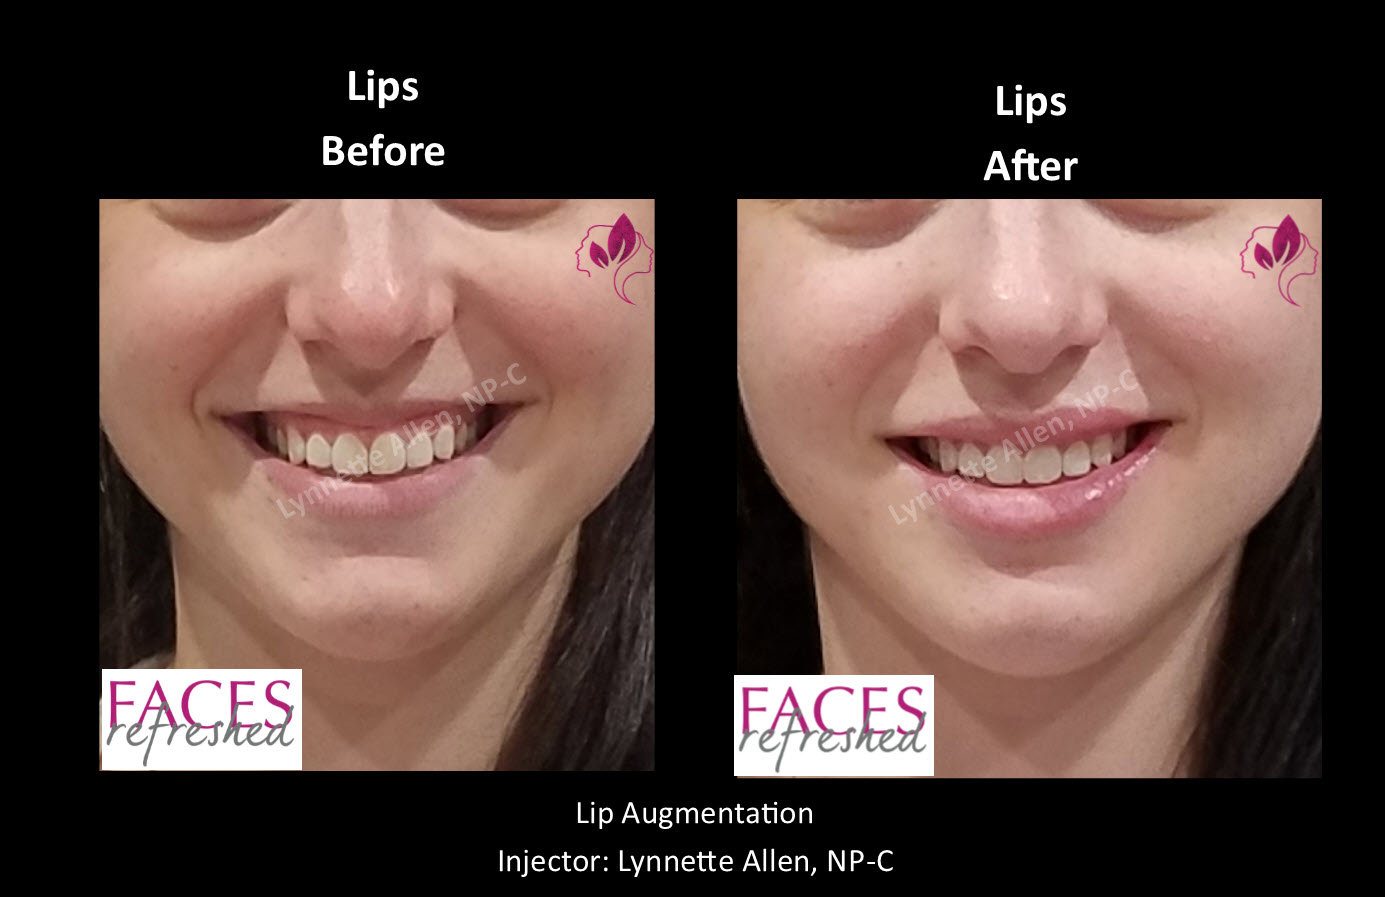 AS_Before_After_Lips1a